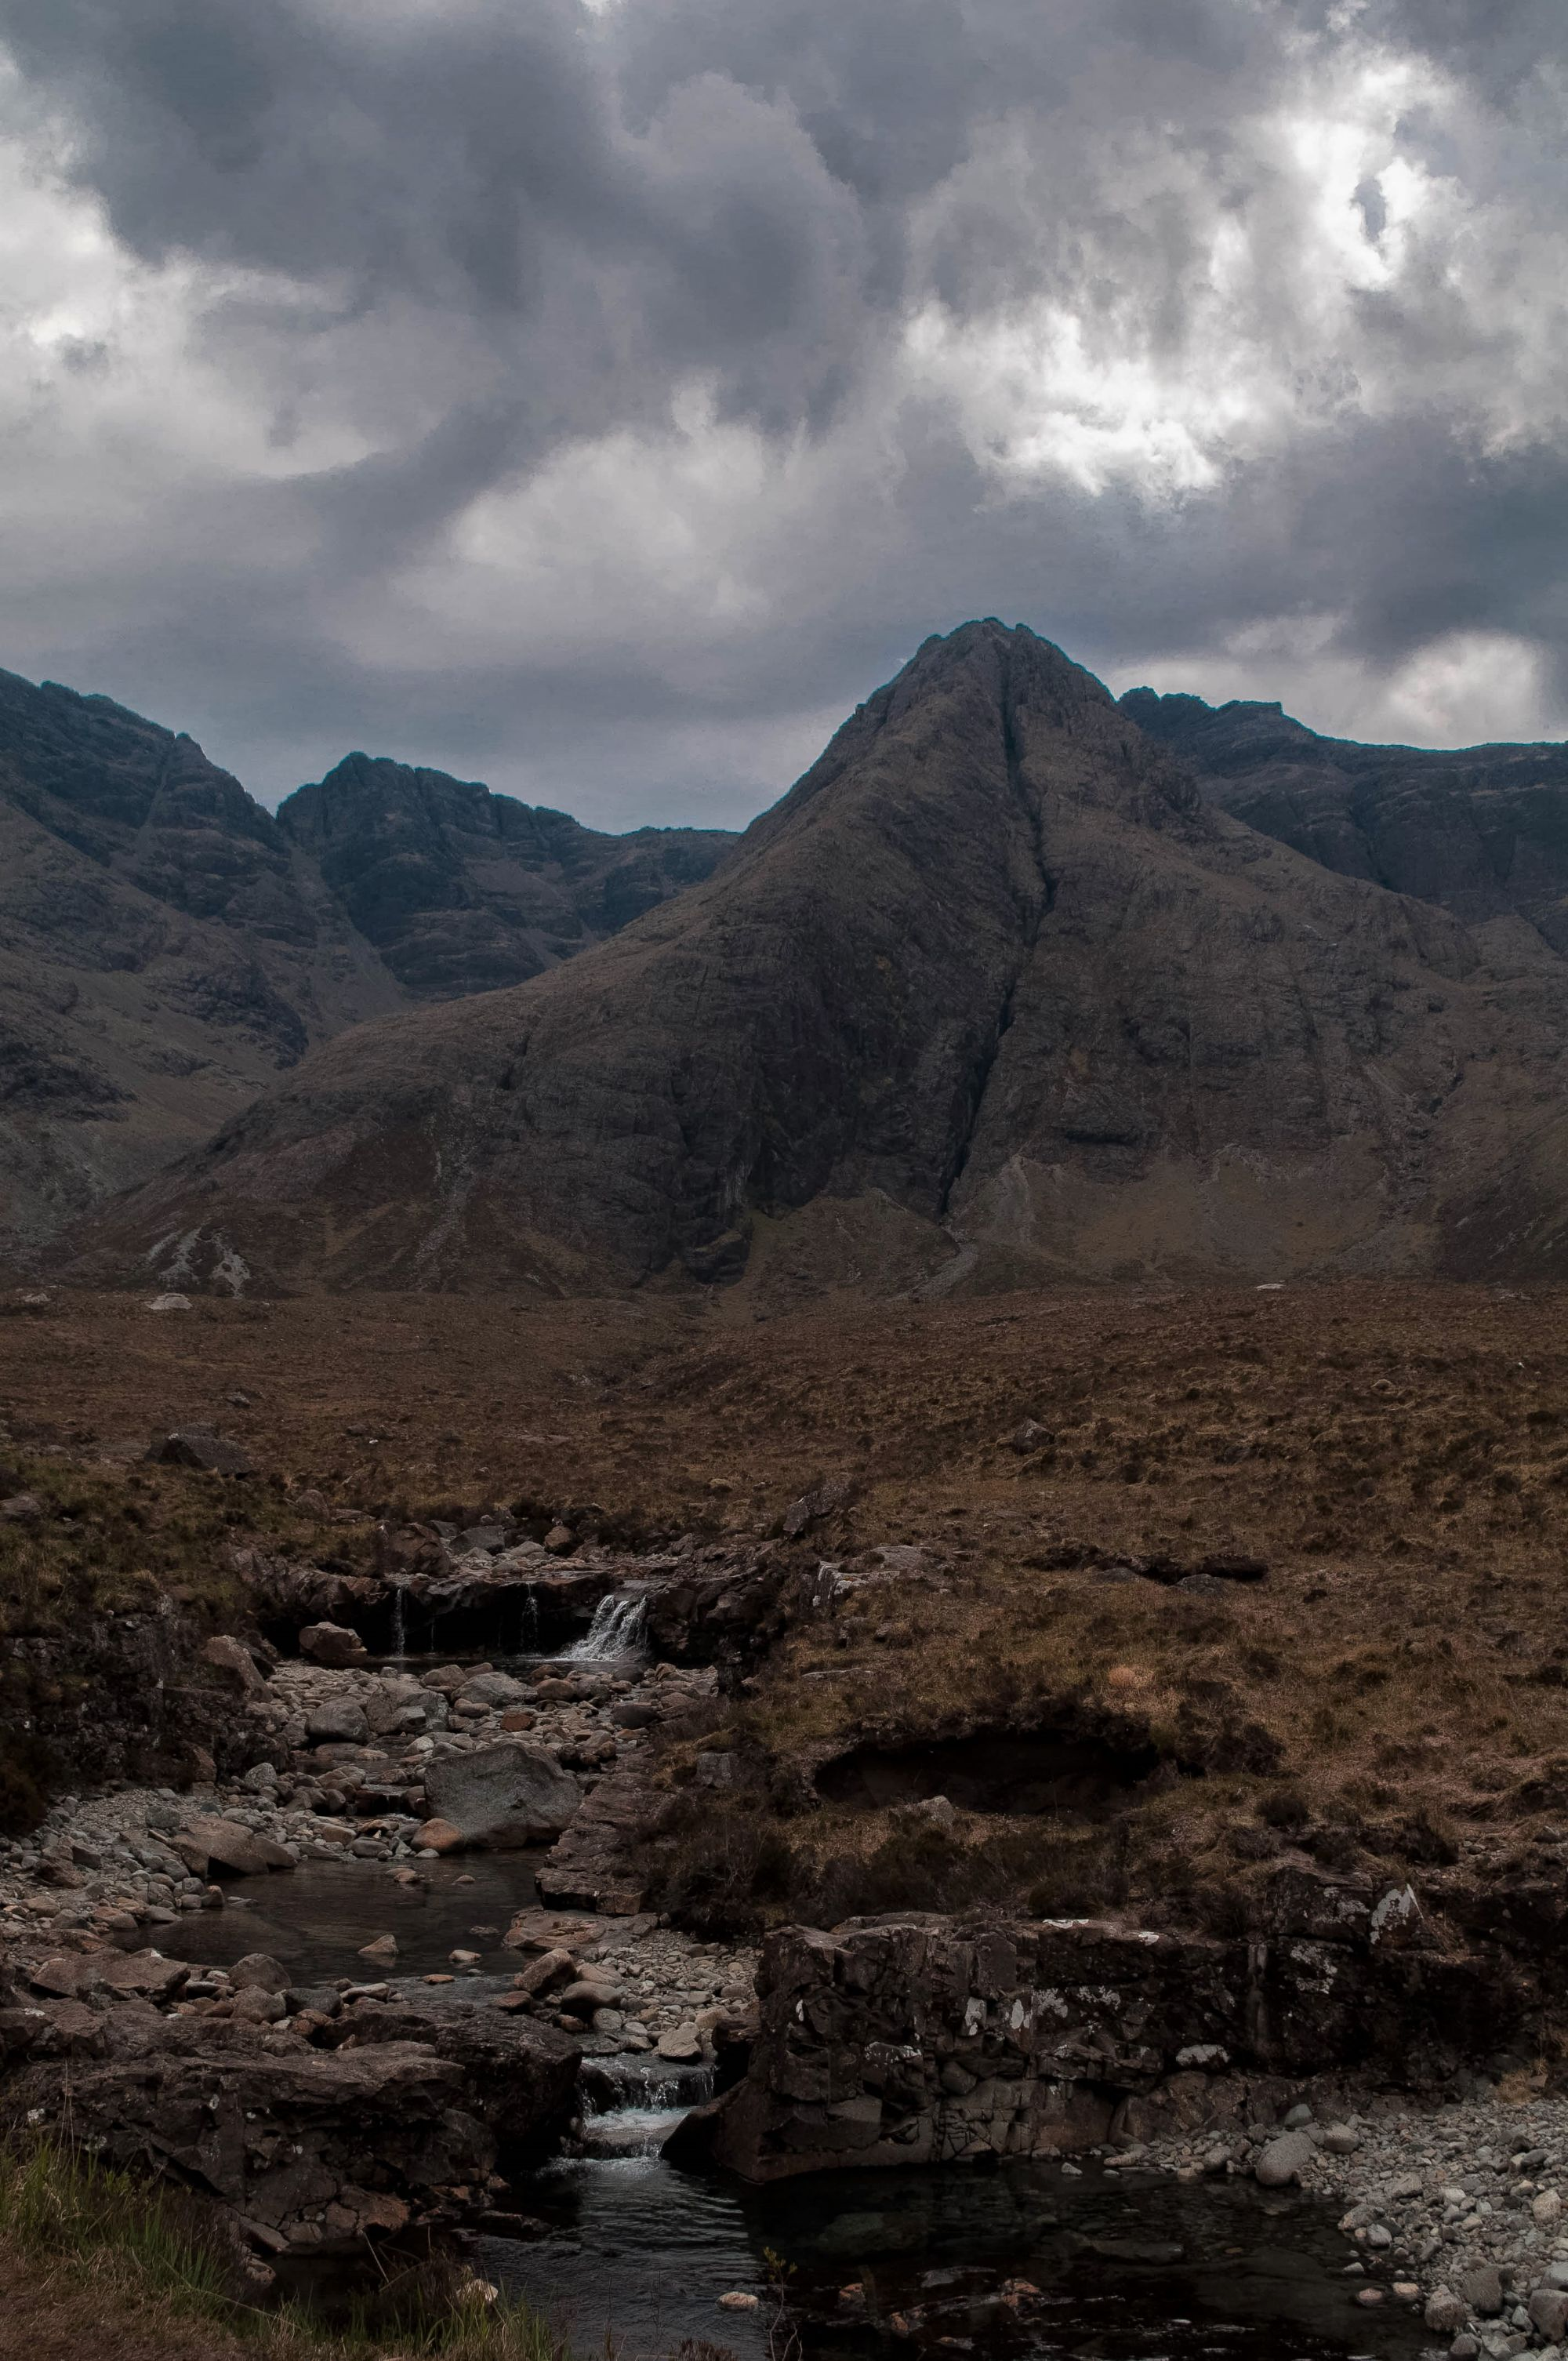 At the Fairy Pools